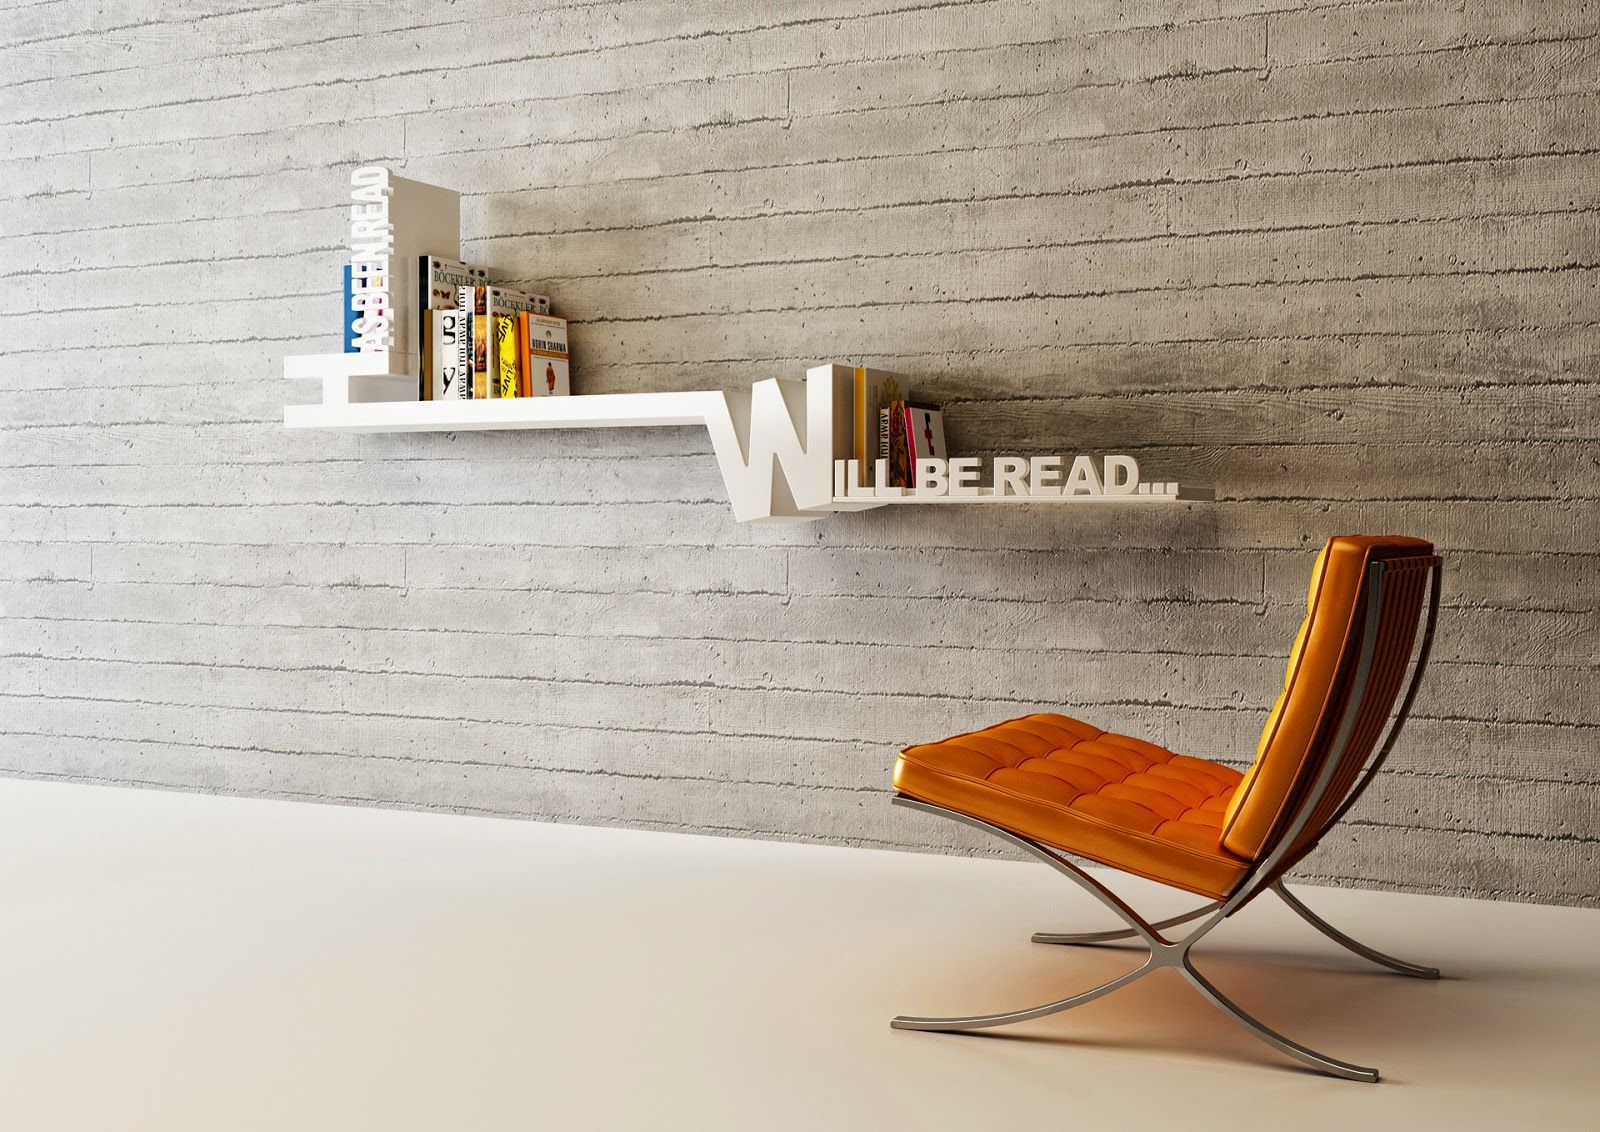 furniture interesting bookshelf target for inspiring interior awesome floating with versetta stone and orange barcelona chair bookcase tall bookshelves shelves shelf built kitchen